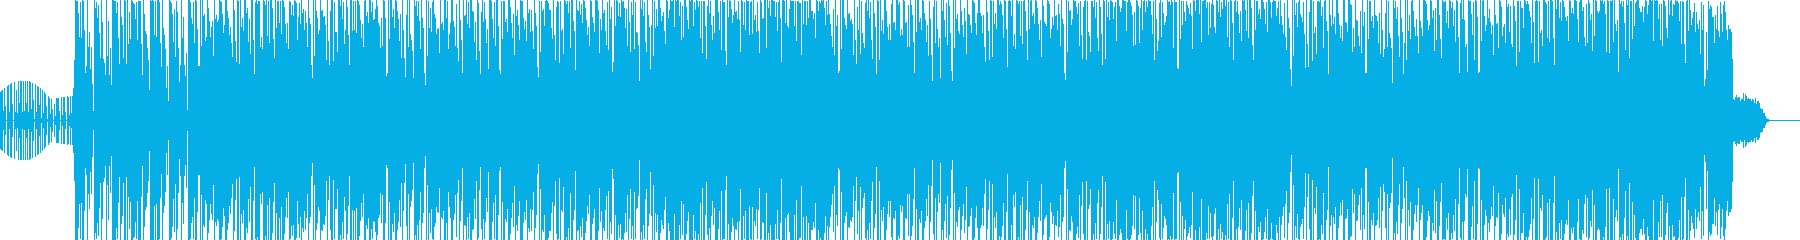 Toxicity of Urban HipHop's reproduced waveform